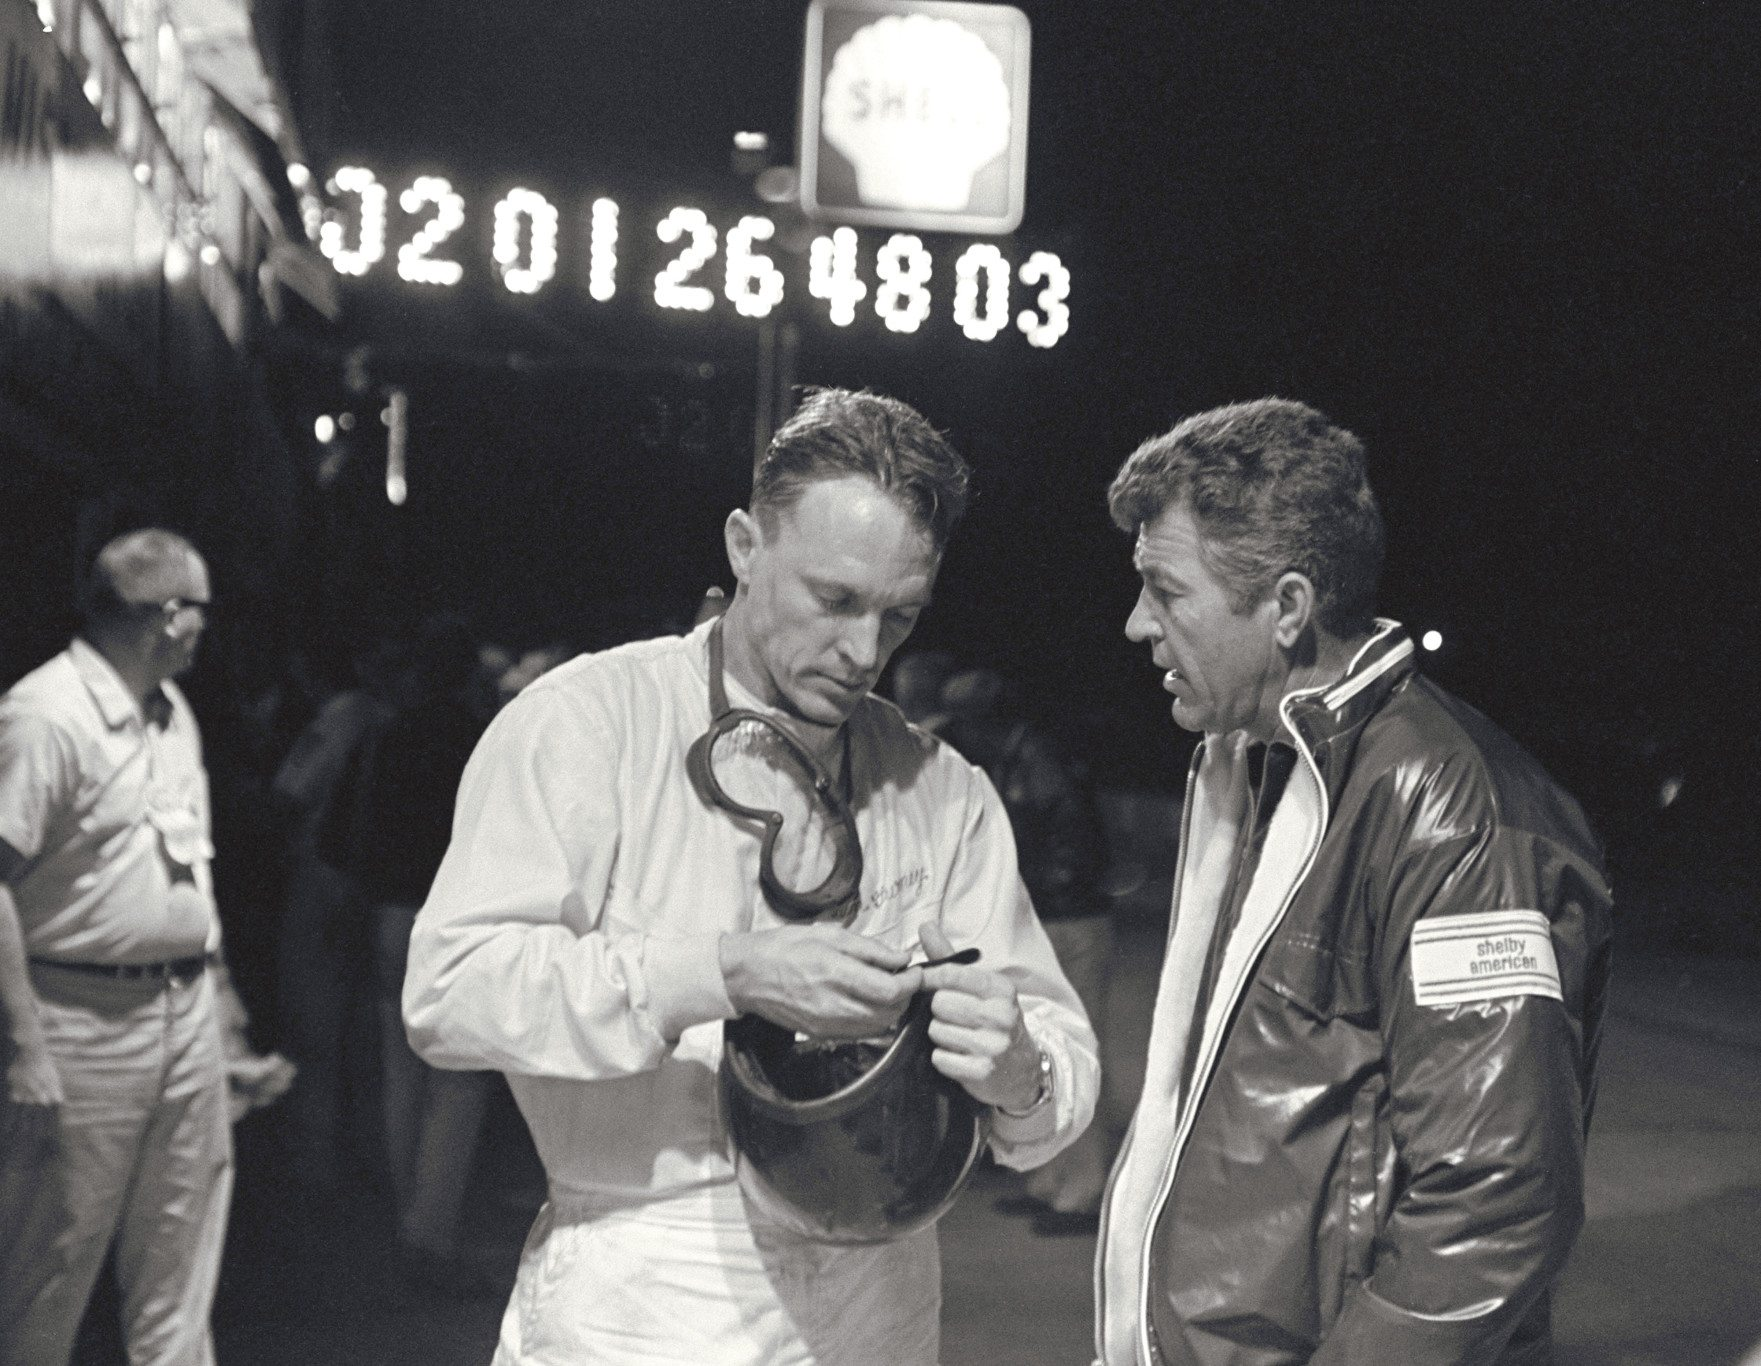 Carol Shelby and Dan Gurney at Sebring Ford Archives